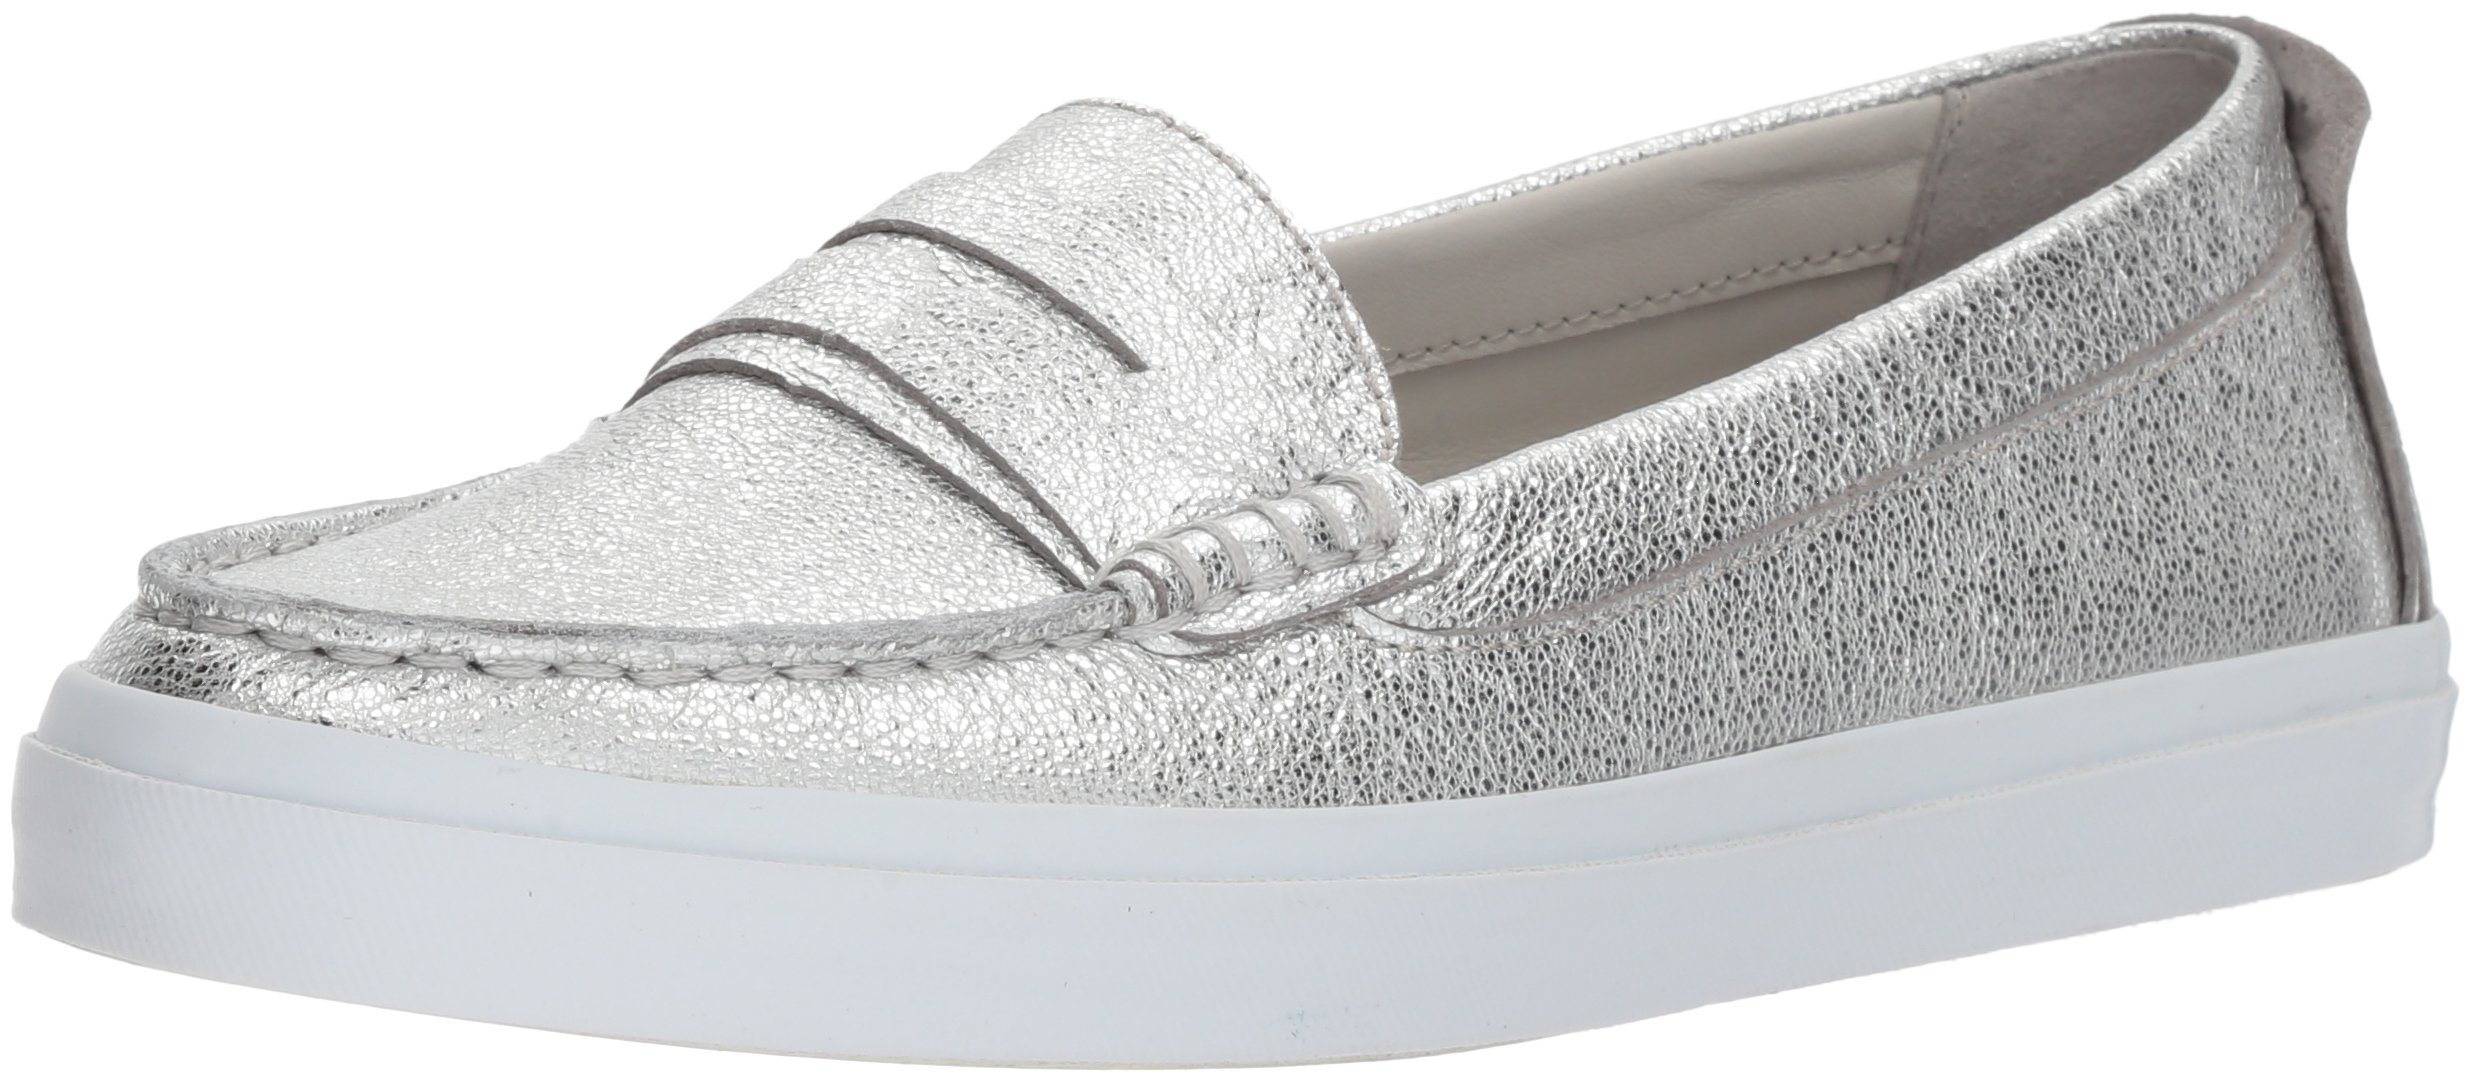 6b4a2799ab8 Galleon - Cole Haan Women s Pinch Weekender LX Penny Loafer